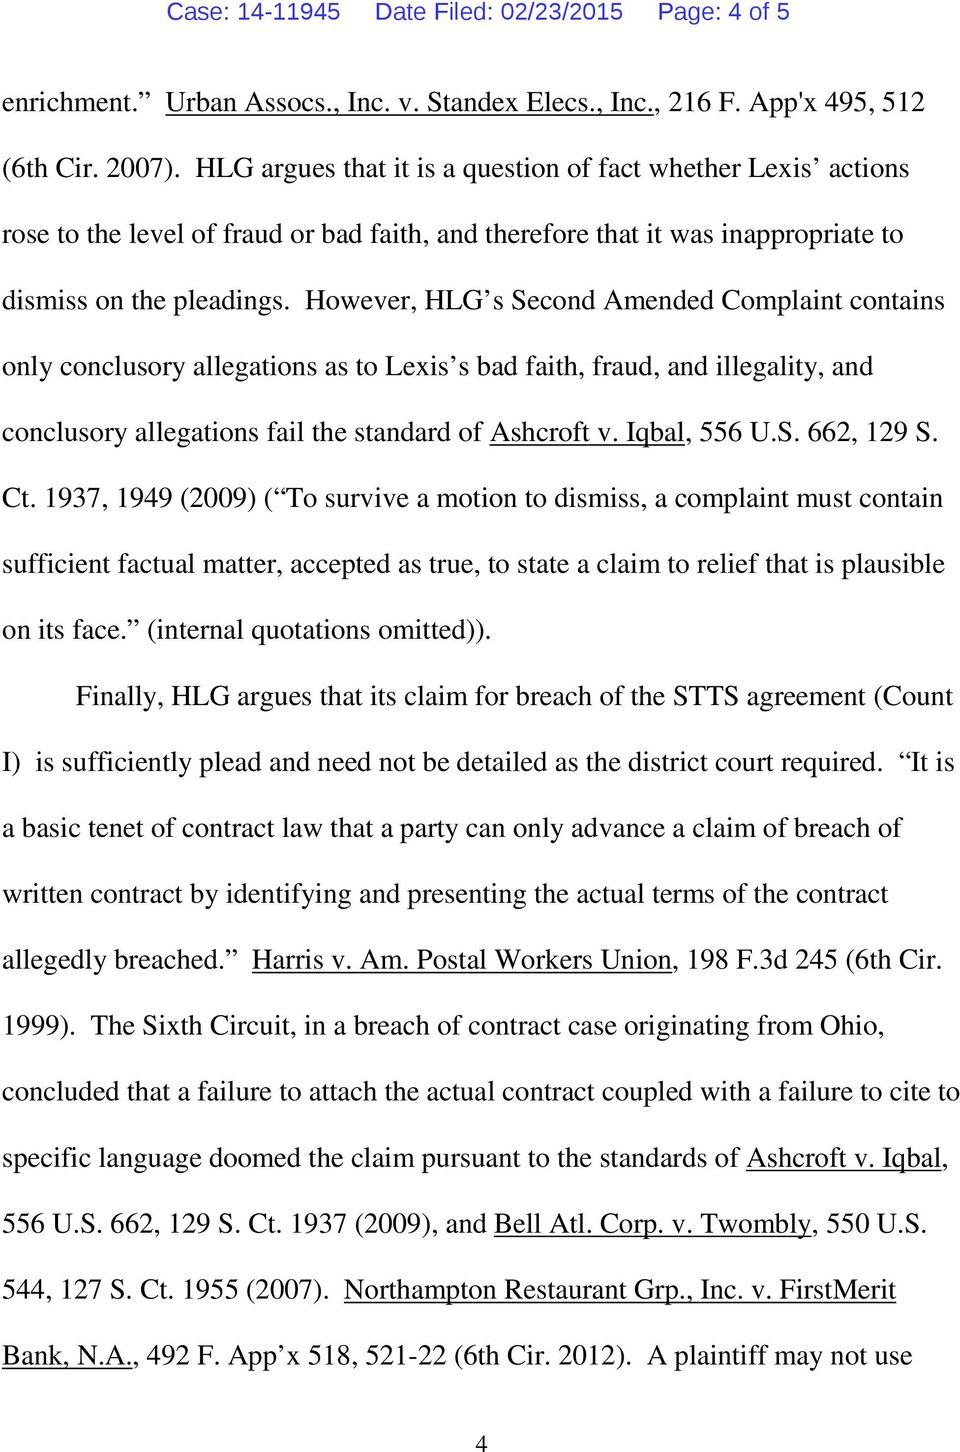 However, HLG s Second Amended Complaint contains only conclusory allegations as to Lexis s bad faith, fraud, and illegality, and conclusory allegations fail the standard of Ashcroft v. Iqbal, 556 U.S. 662, 129 S.